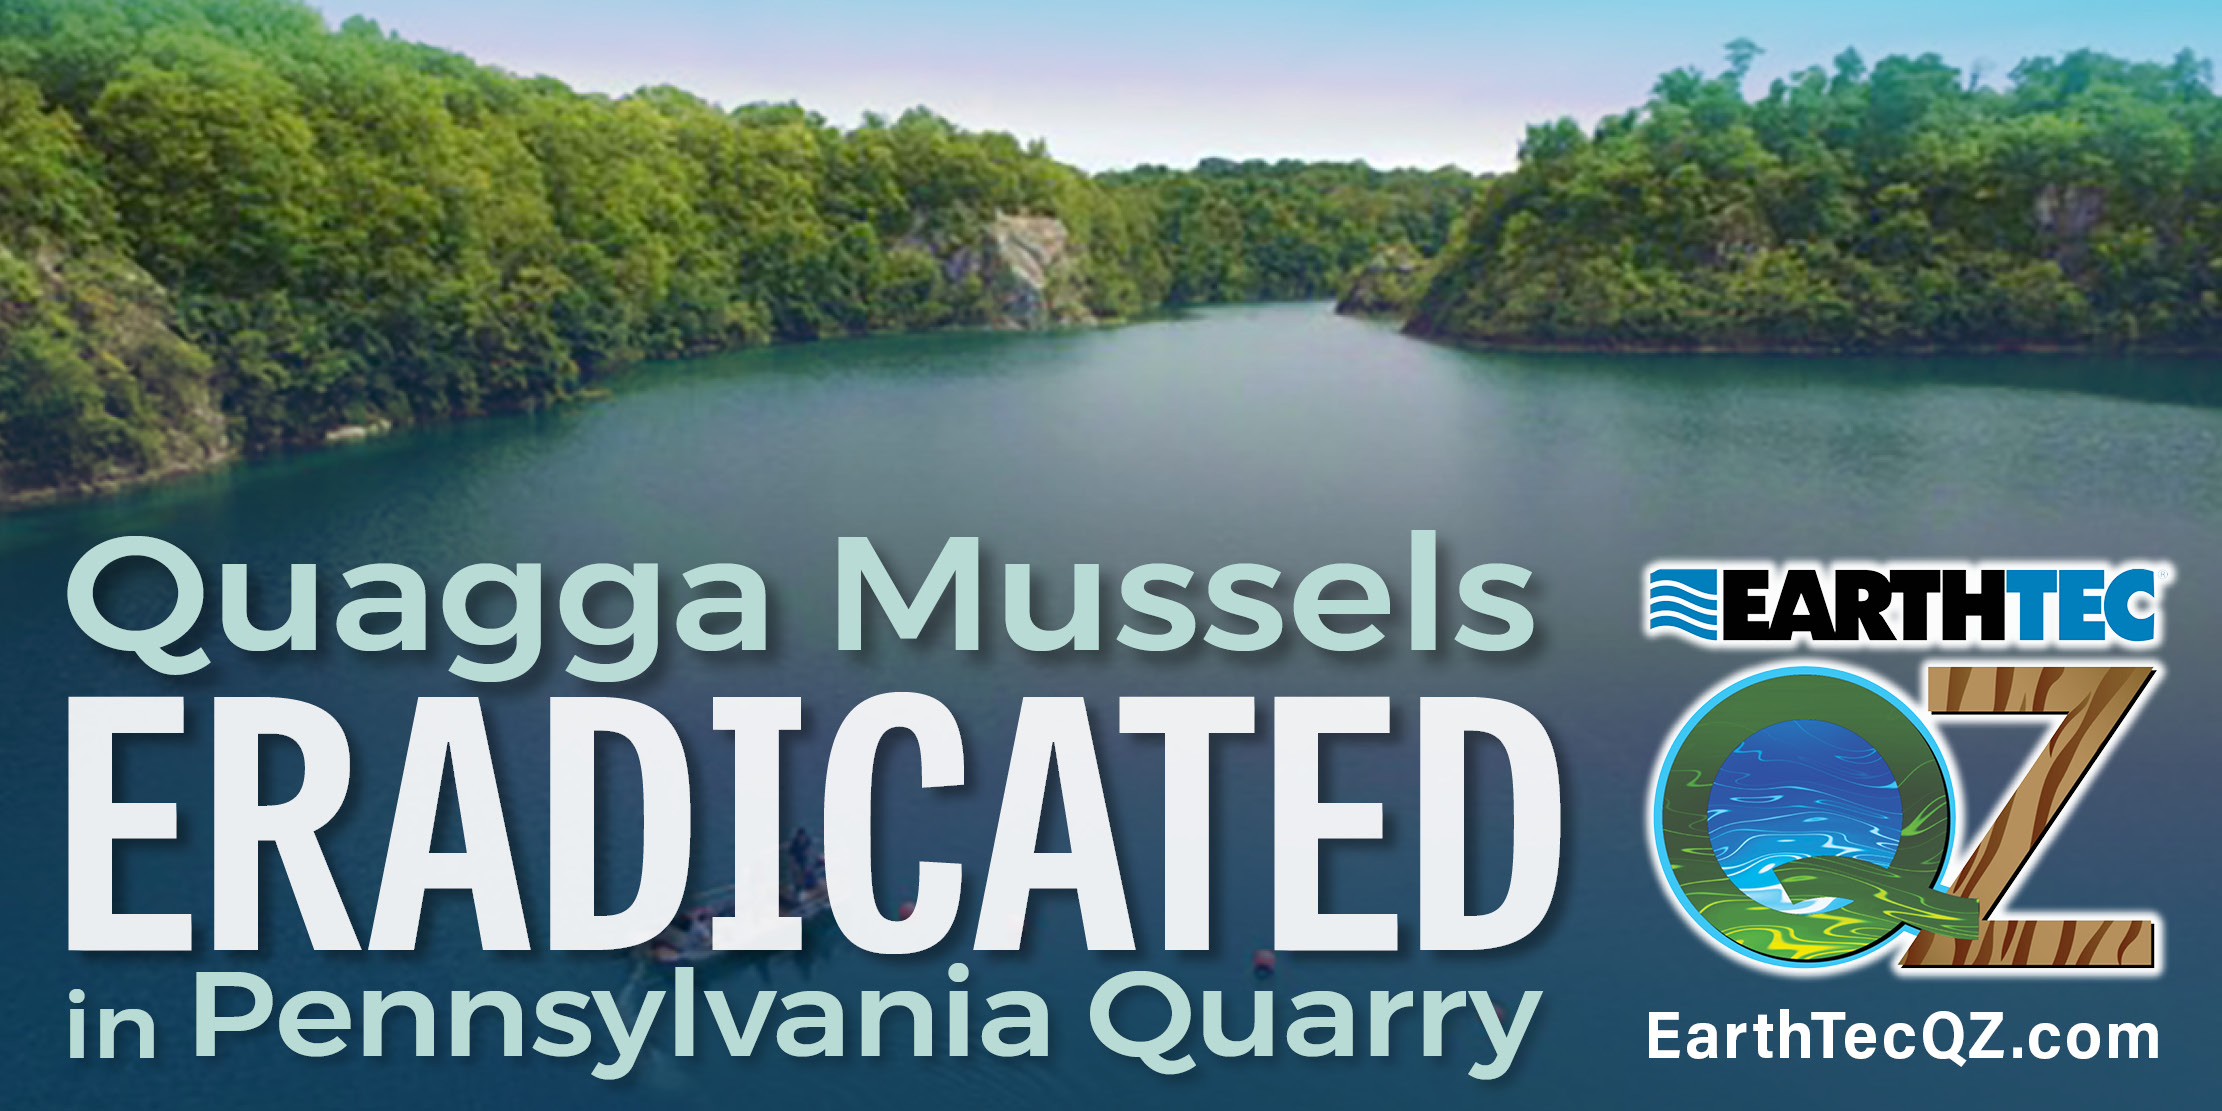 Quagga Mussel Eradication Confirmed in Historic Pennsylvania Lake